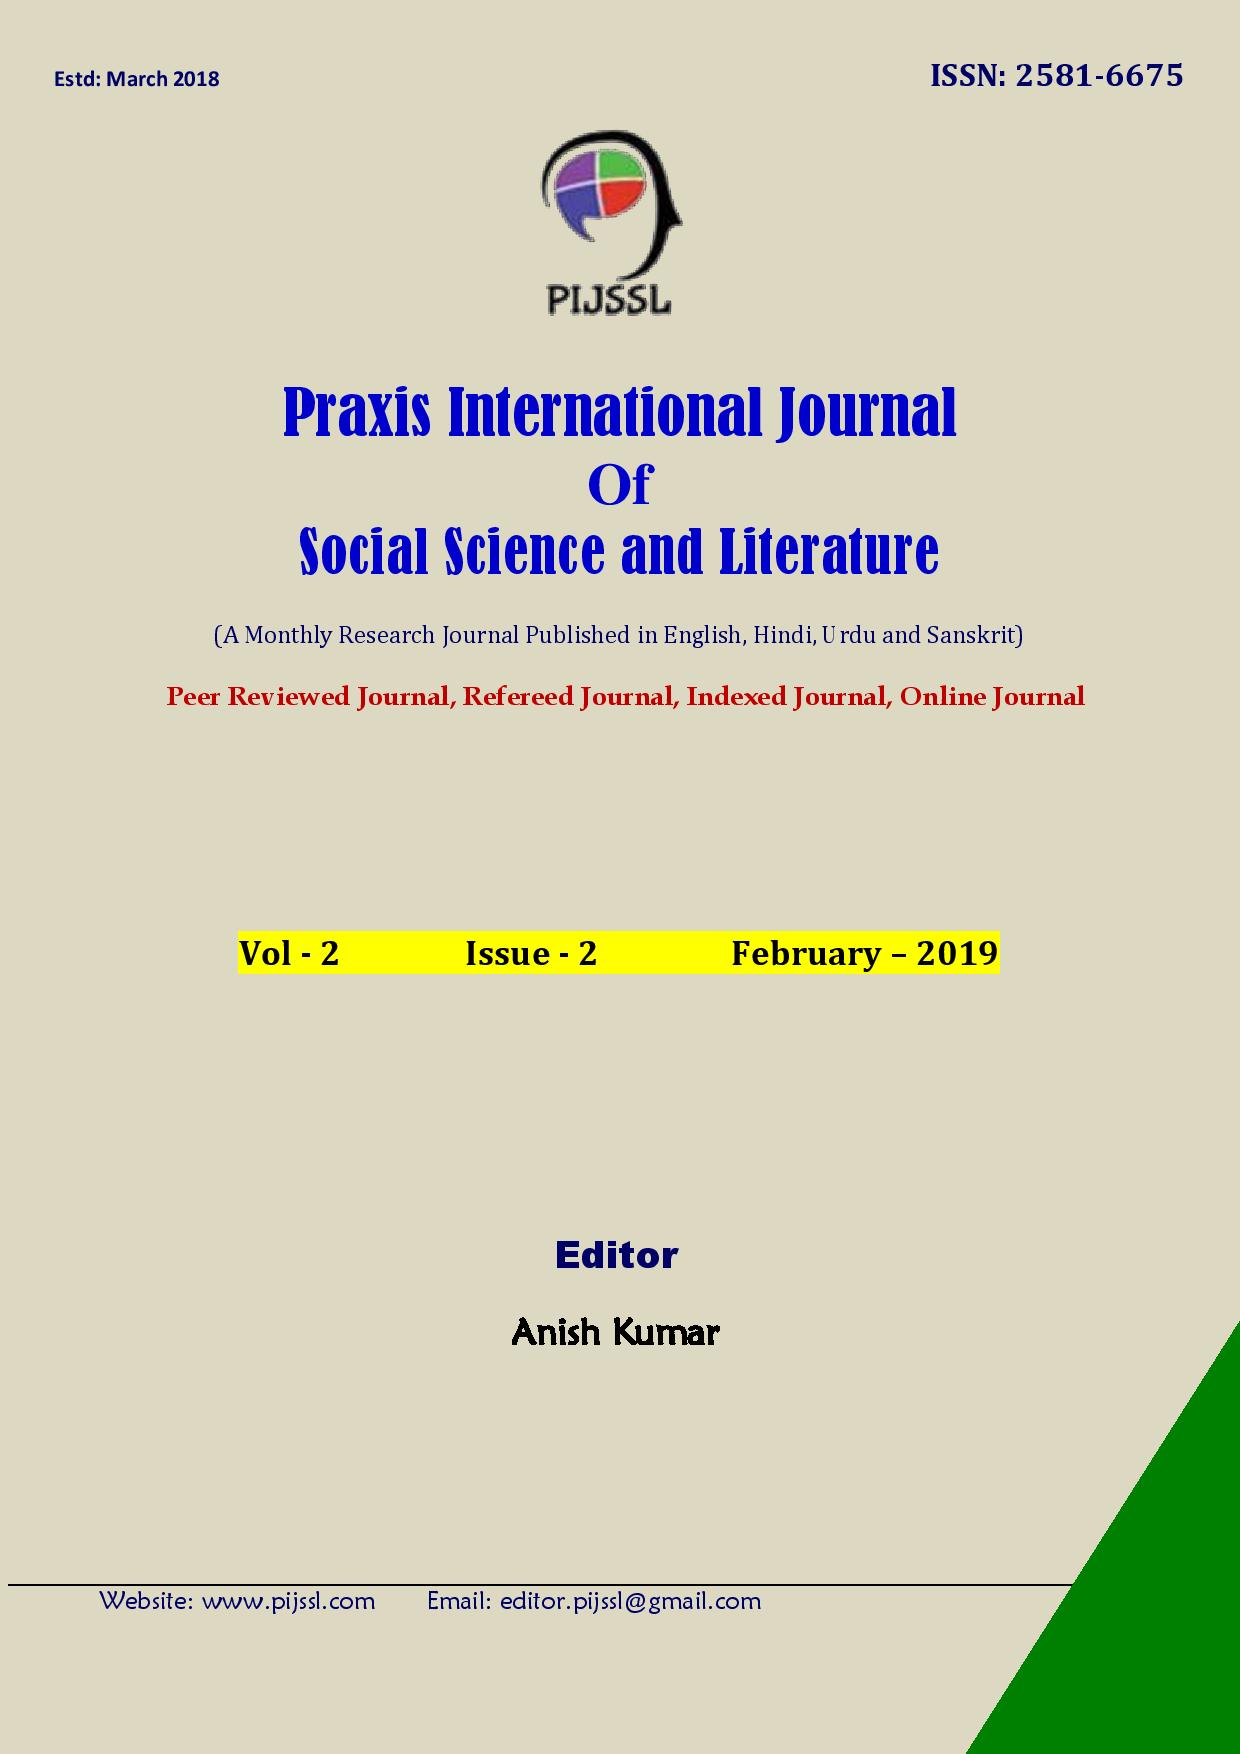 A Monthly Research Journal Published in English, Hindi, Urdu and Sanskrit